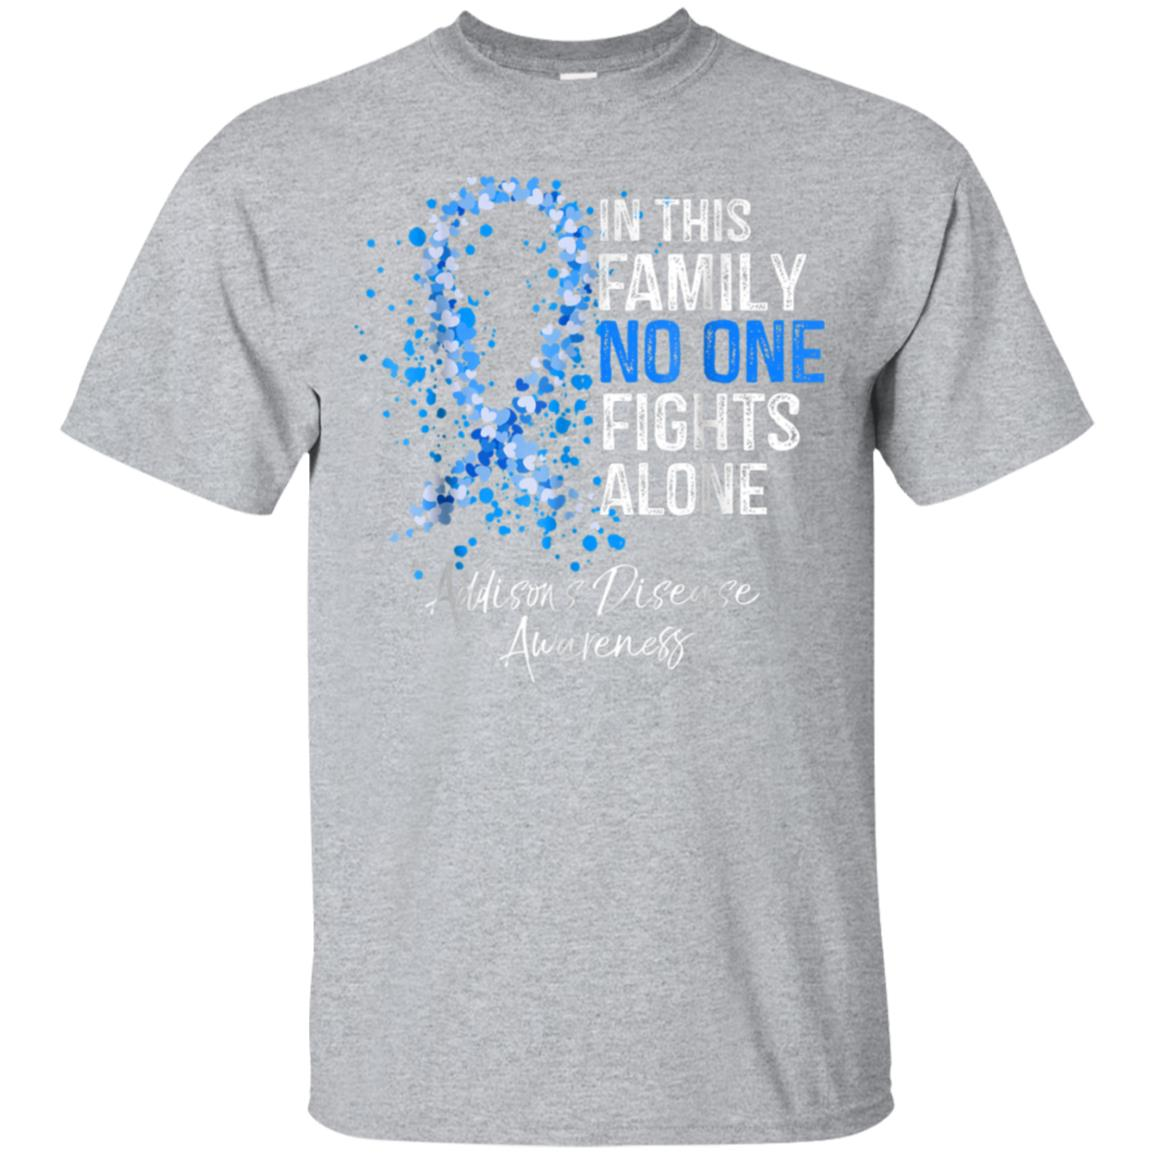 In This Family No One Fights Alone Shirt Addison's Disease 99promocode